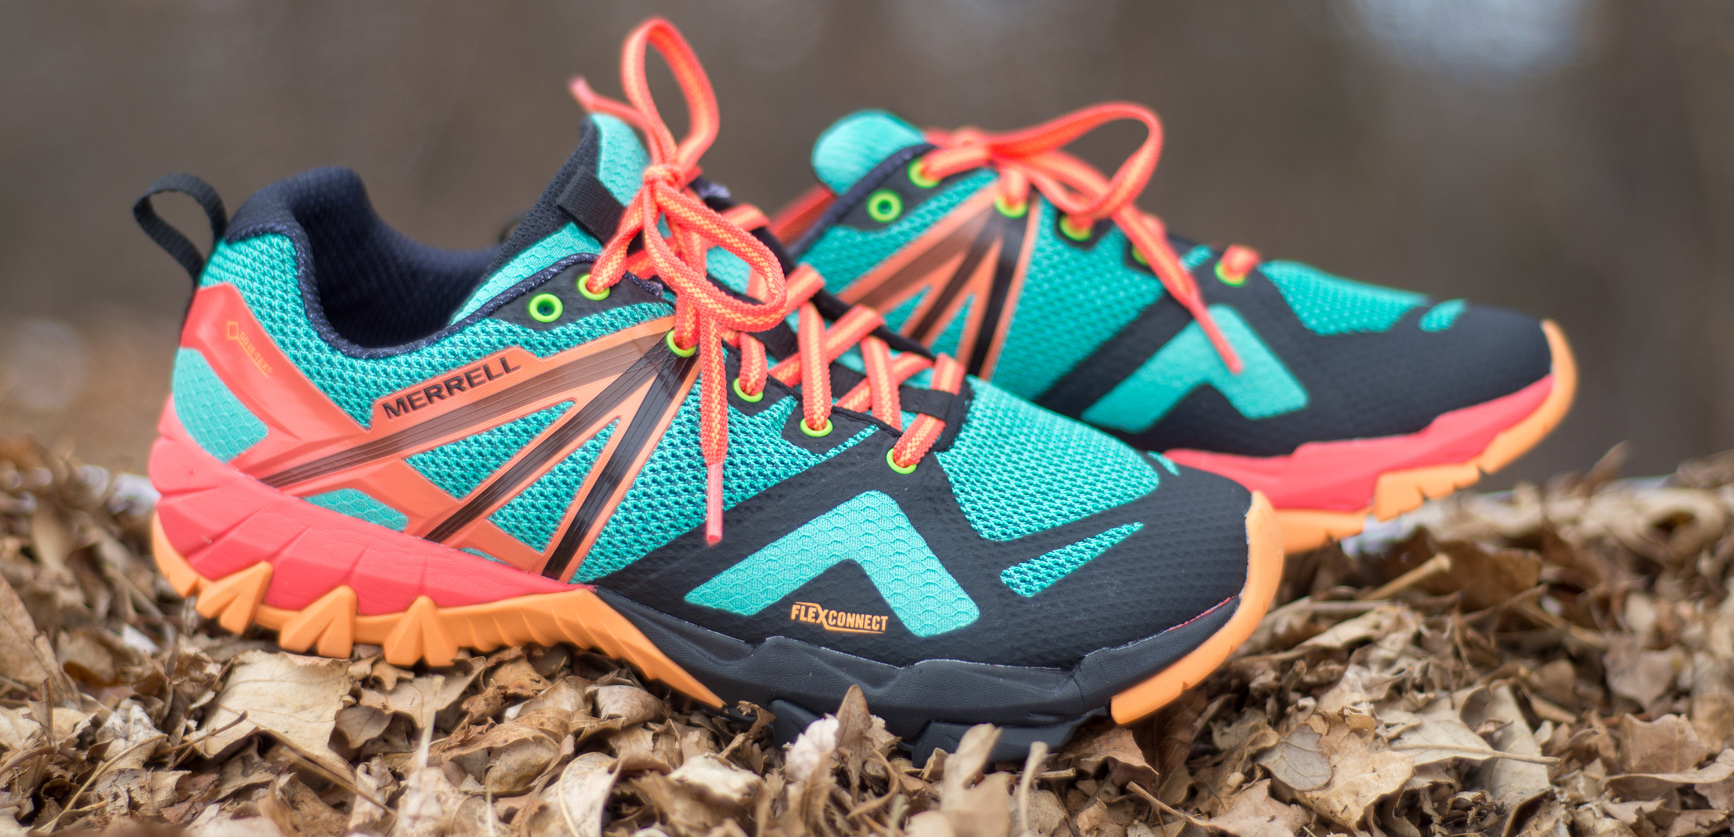 Find Your FKT Merrell Hiking Contest